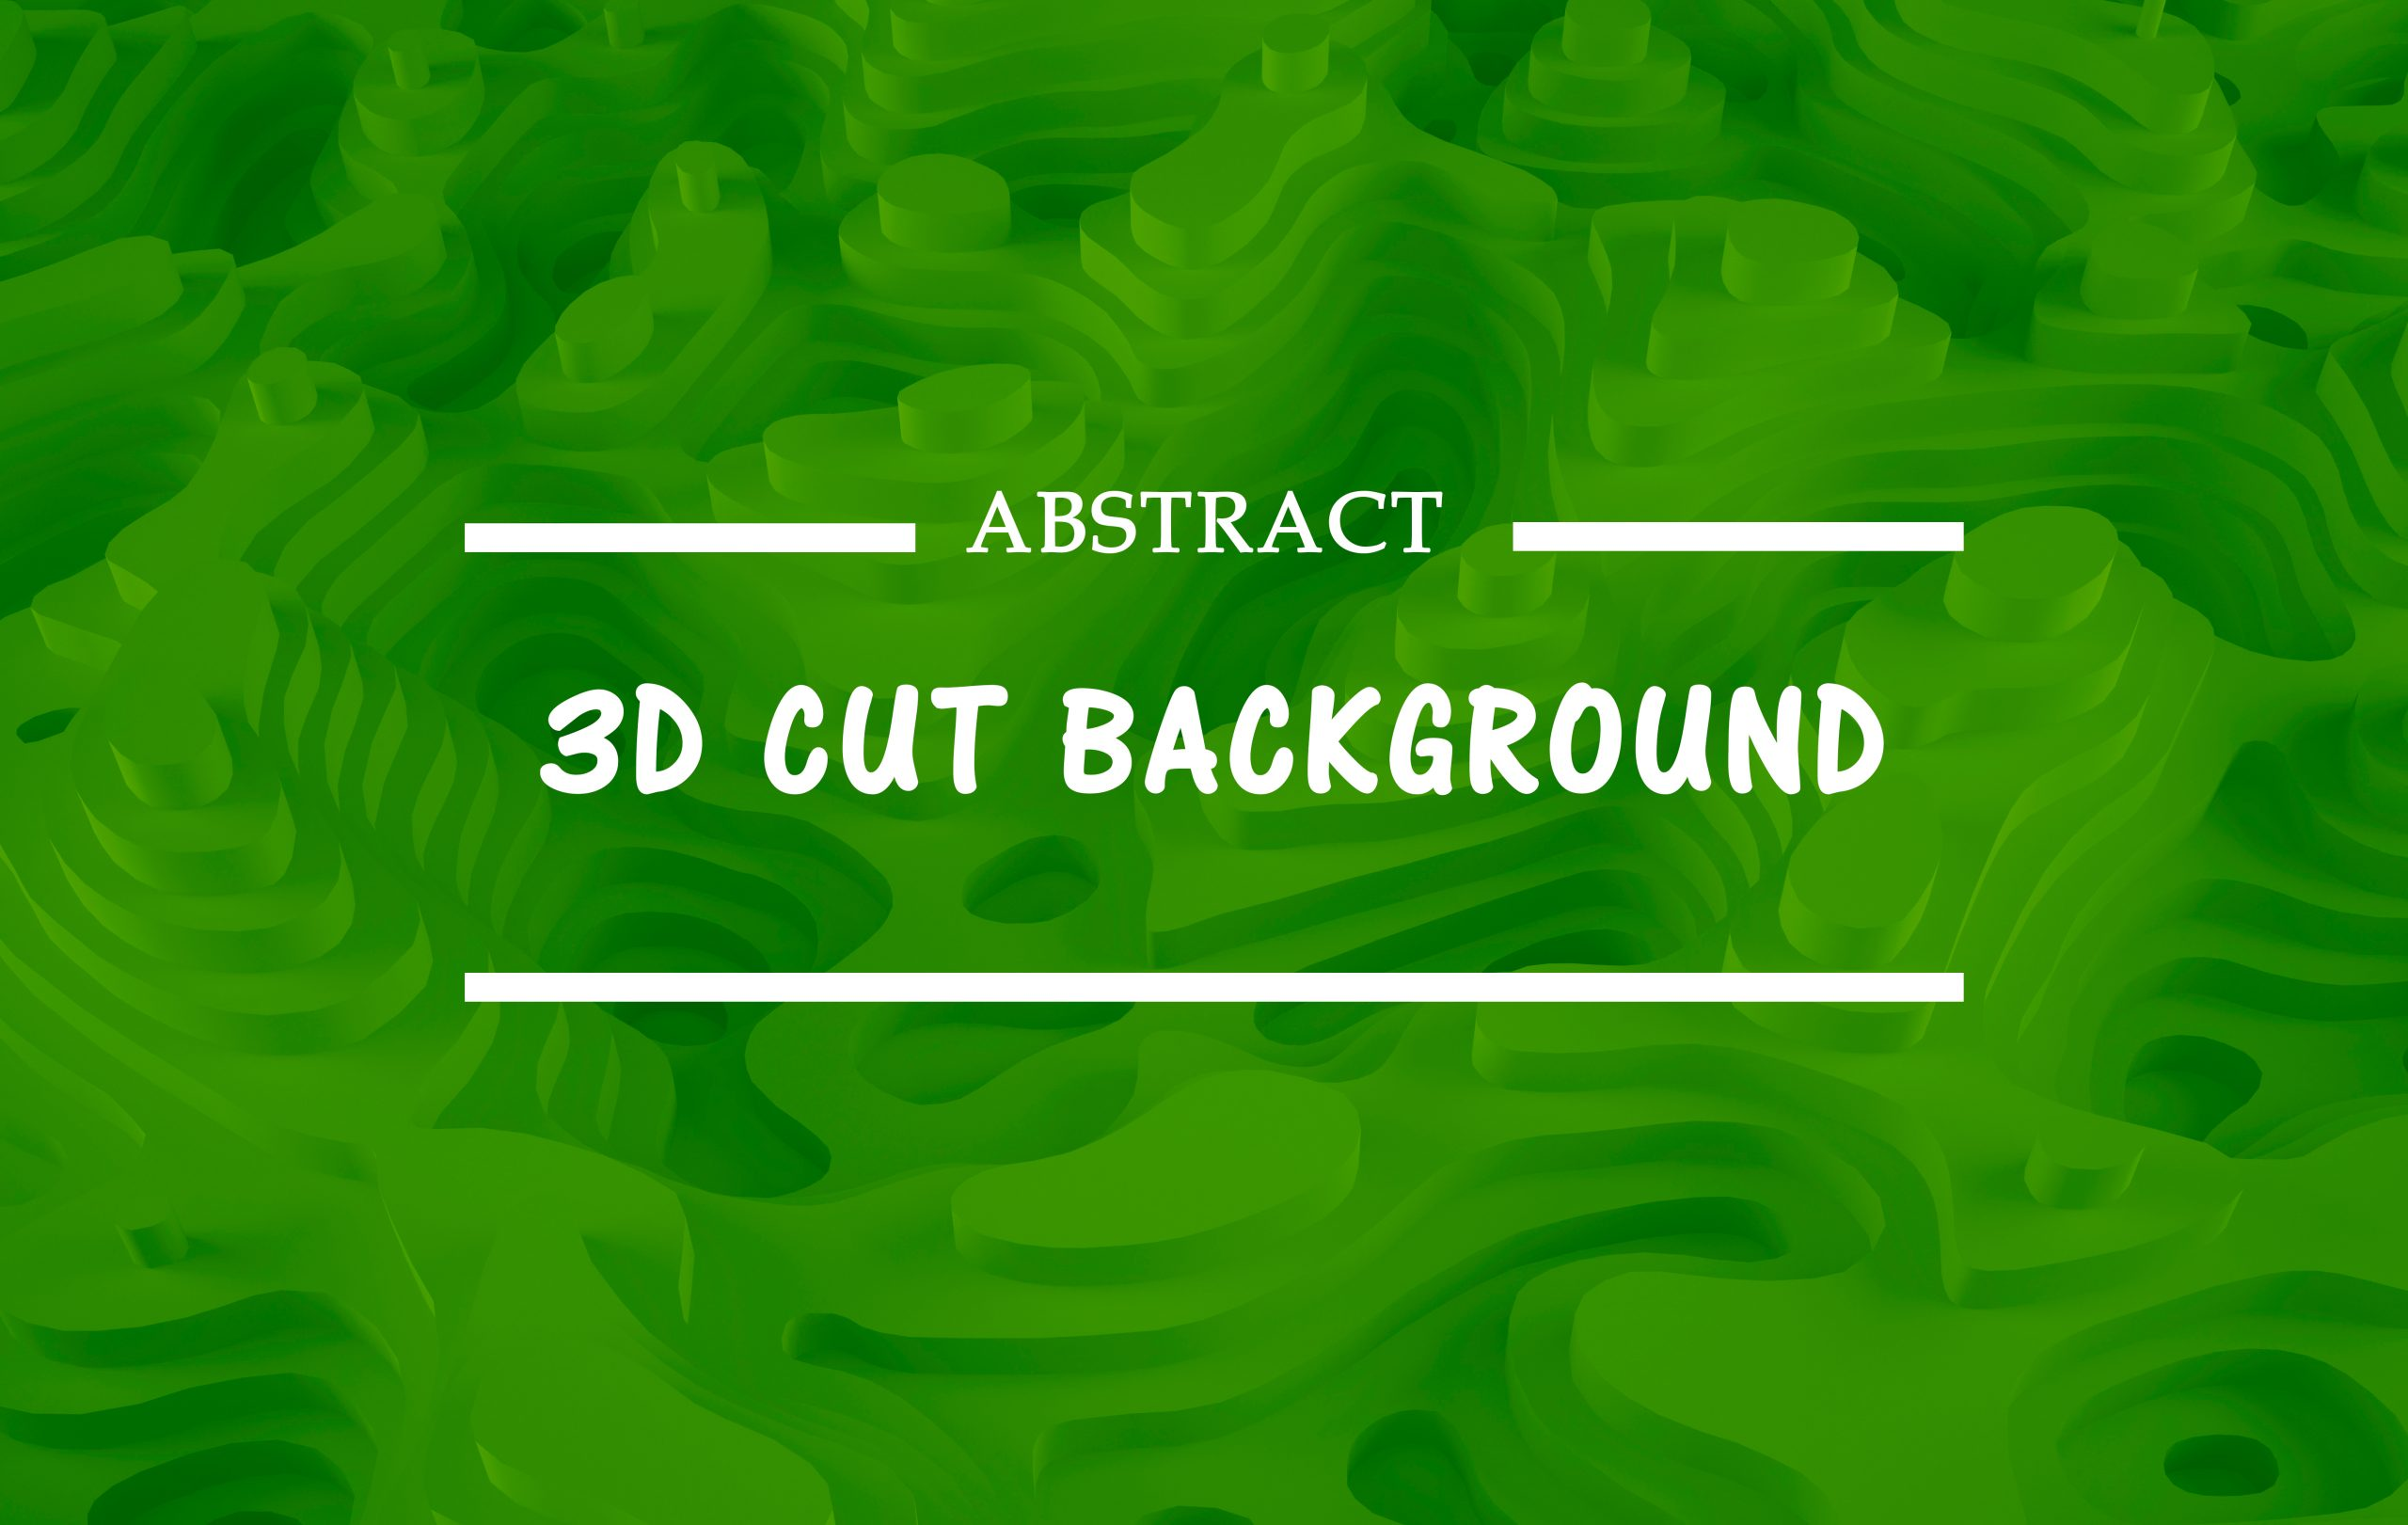 3D Cut Abstract Background Pack 1